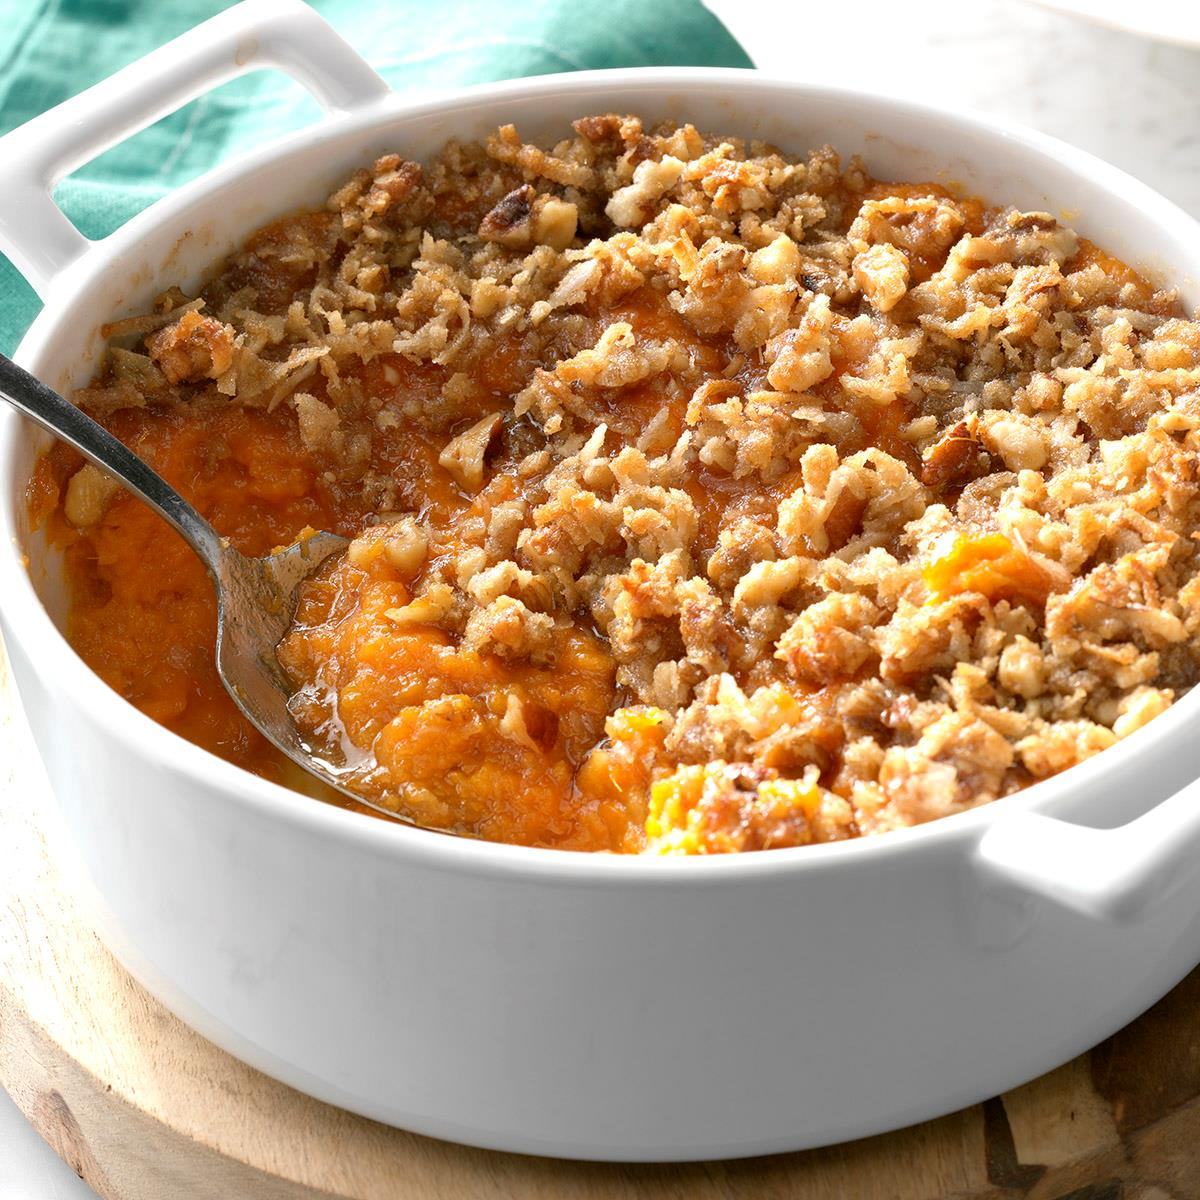 Sweet Potatoe Dishes: Sweet Potato Casserole Recipe